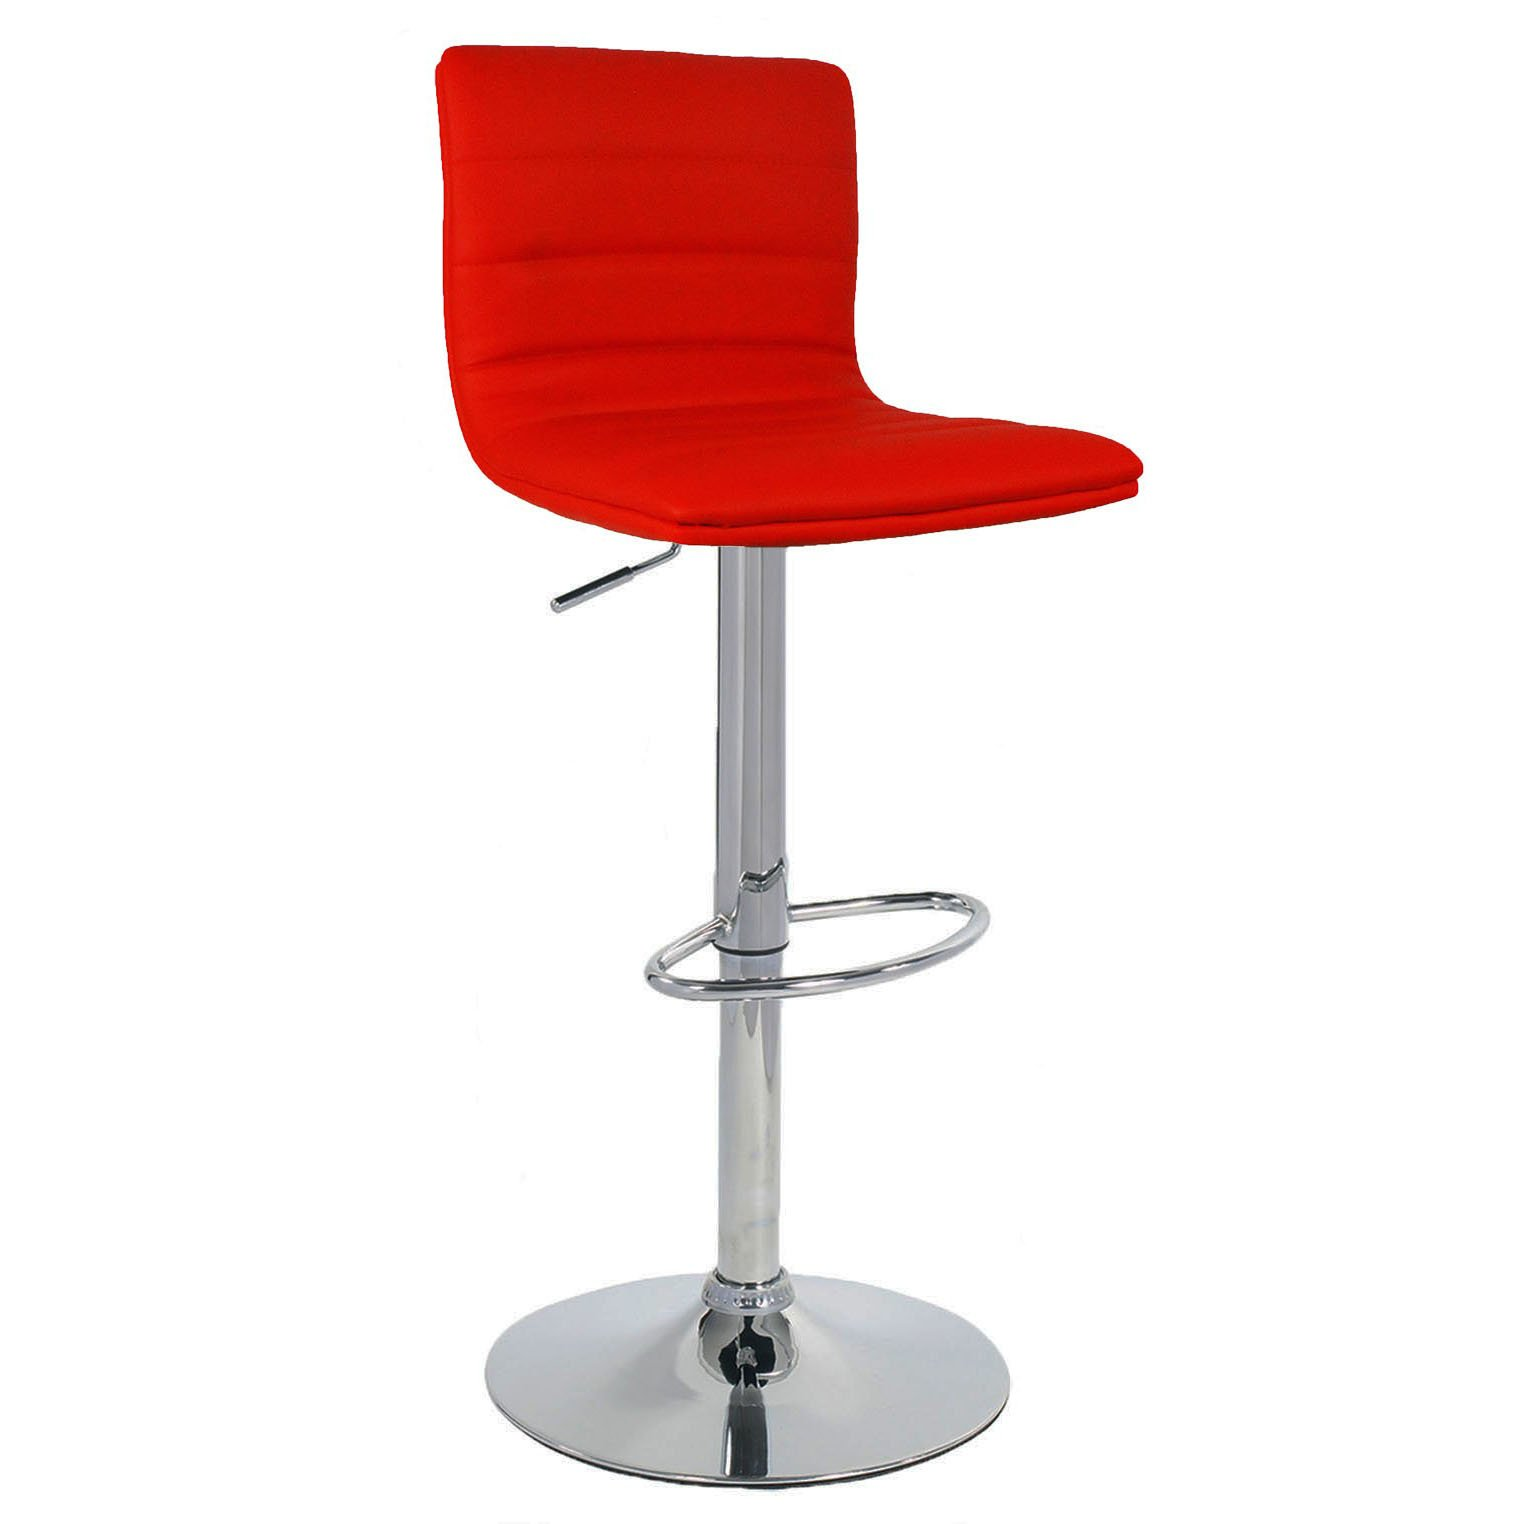 Aldo Bar Stool - Red Product Image